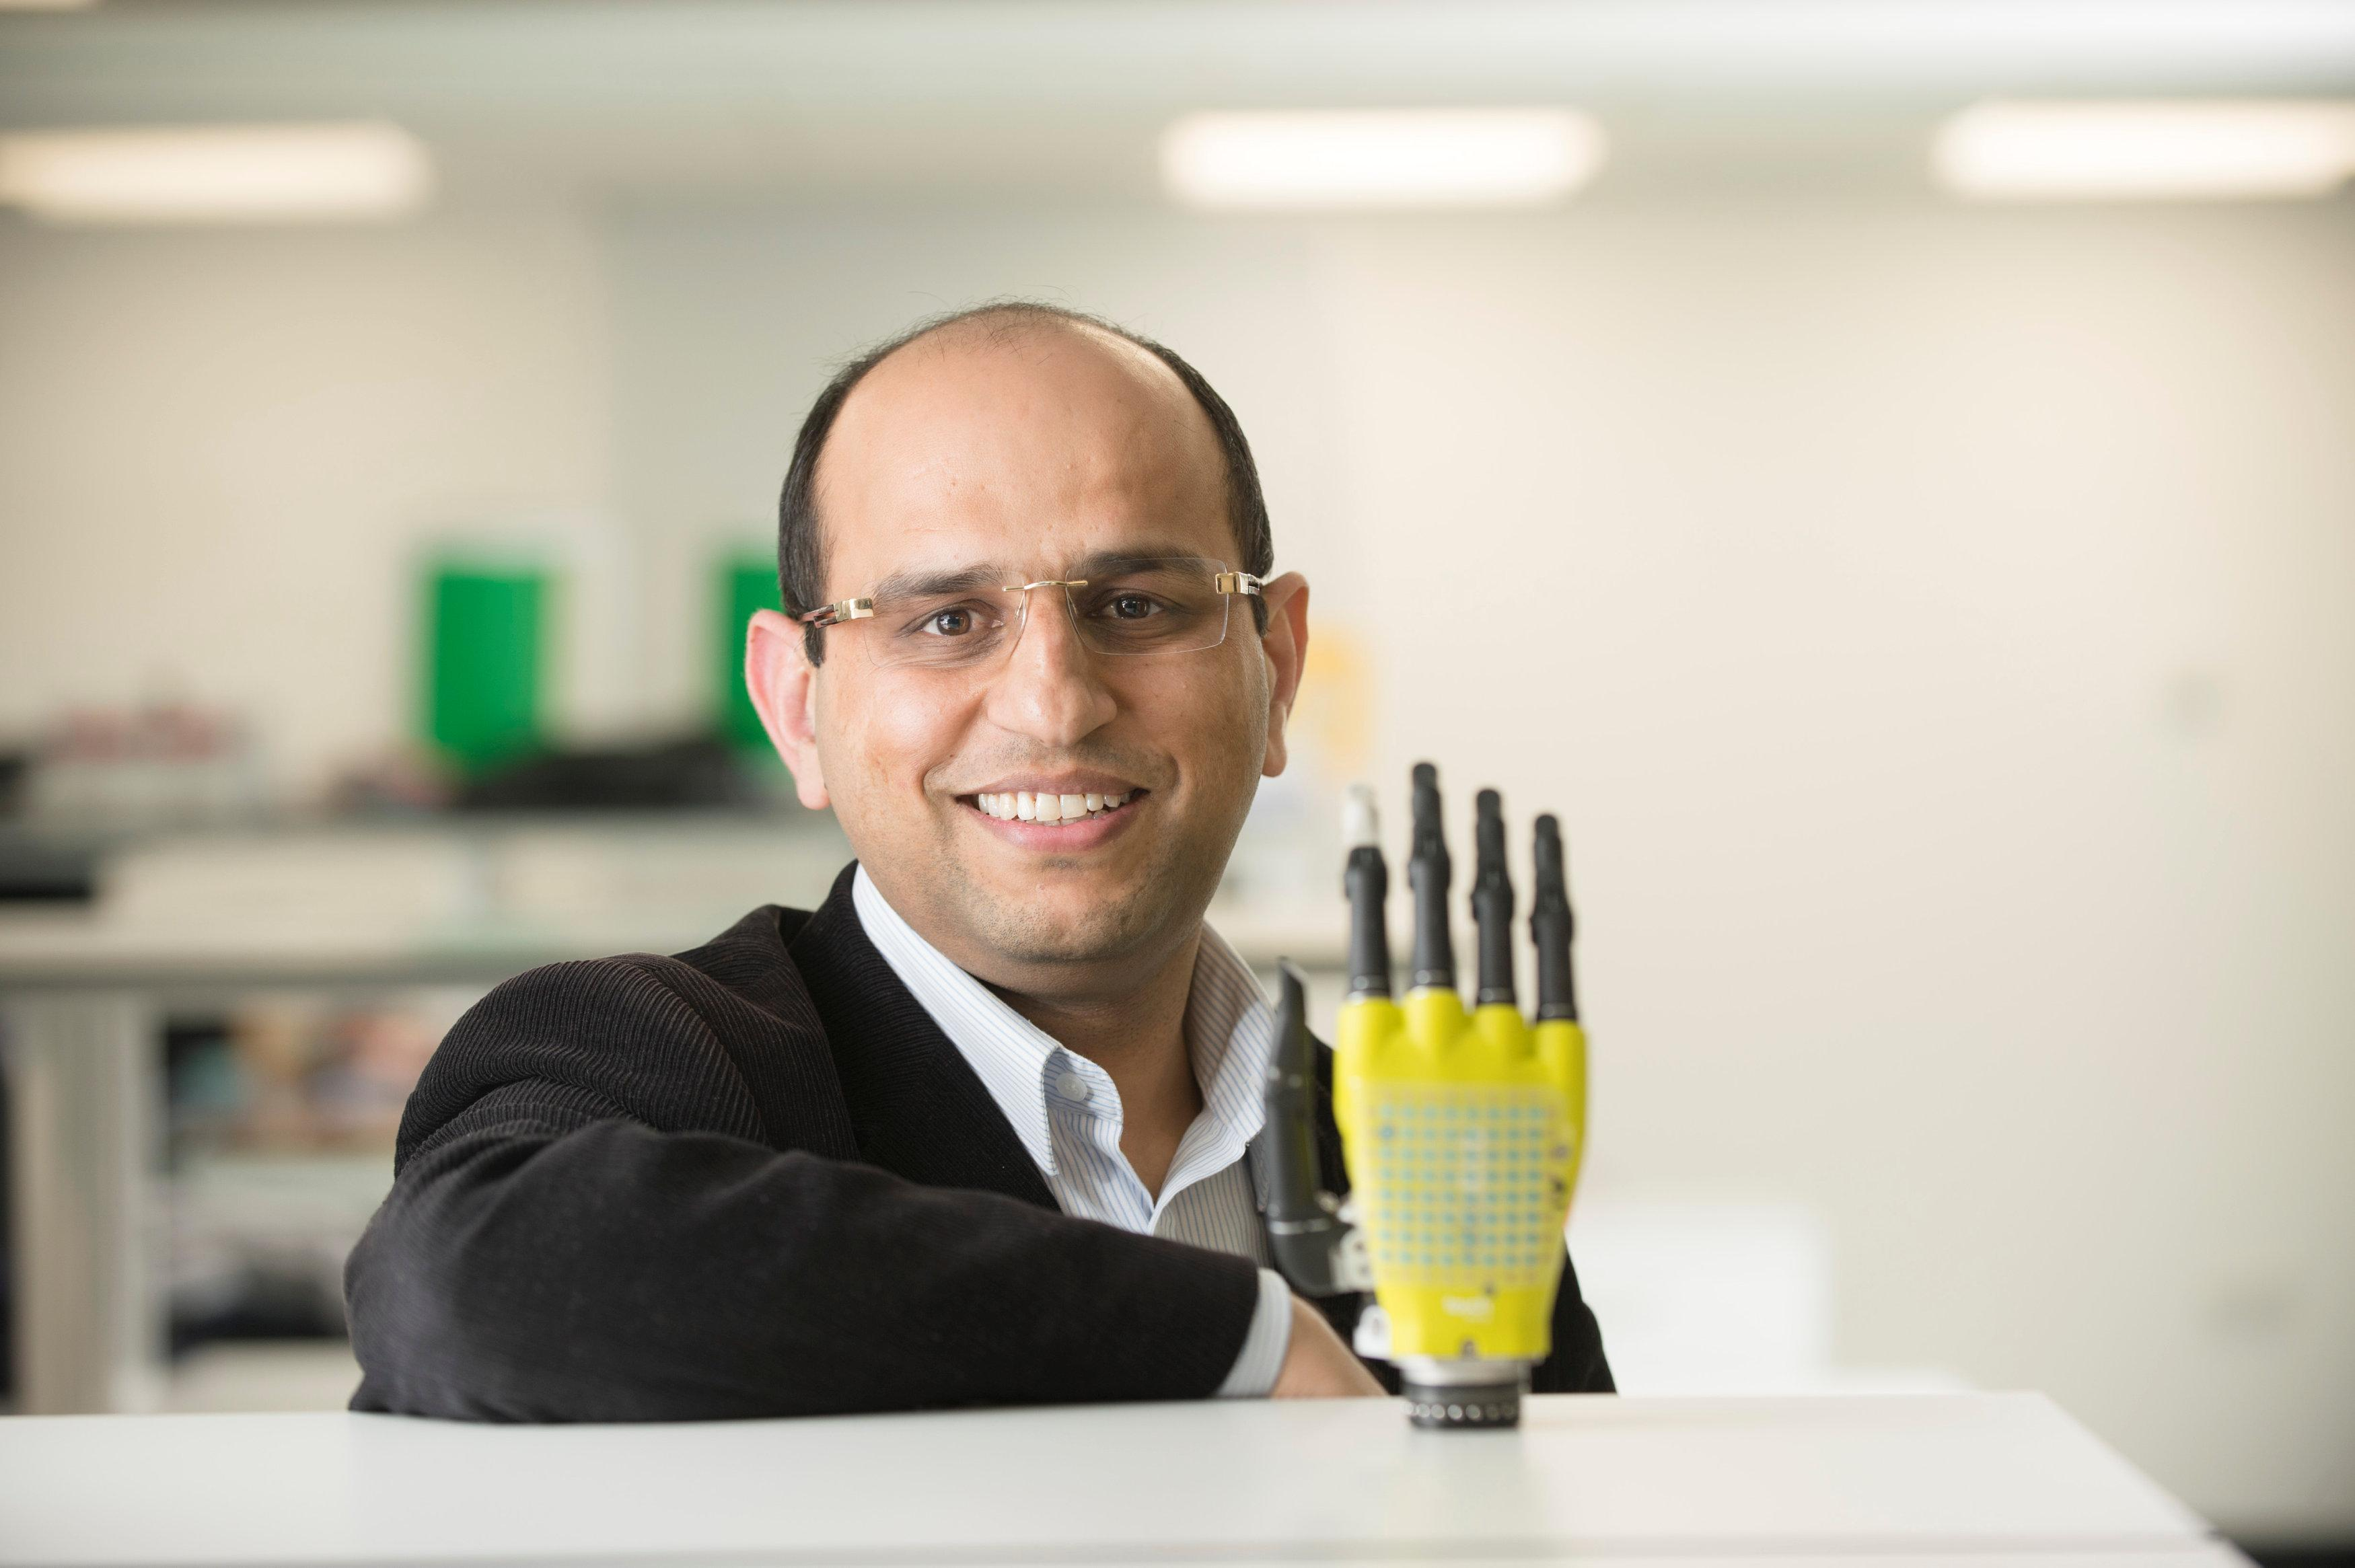 Solar powered skin could change lives for amputees